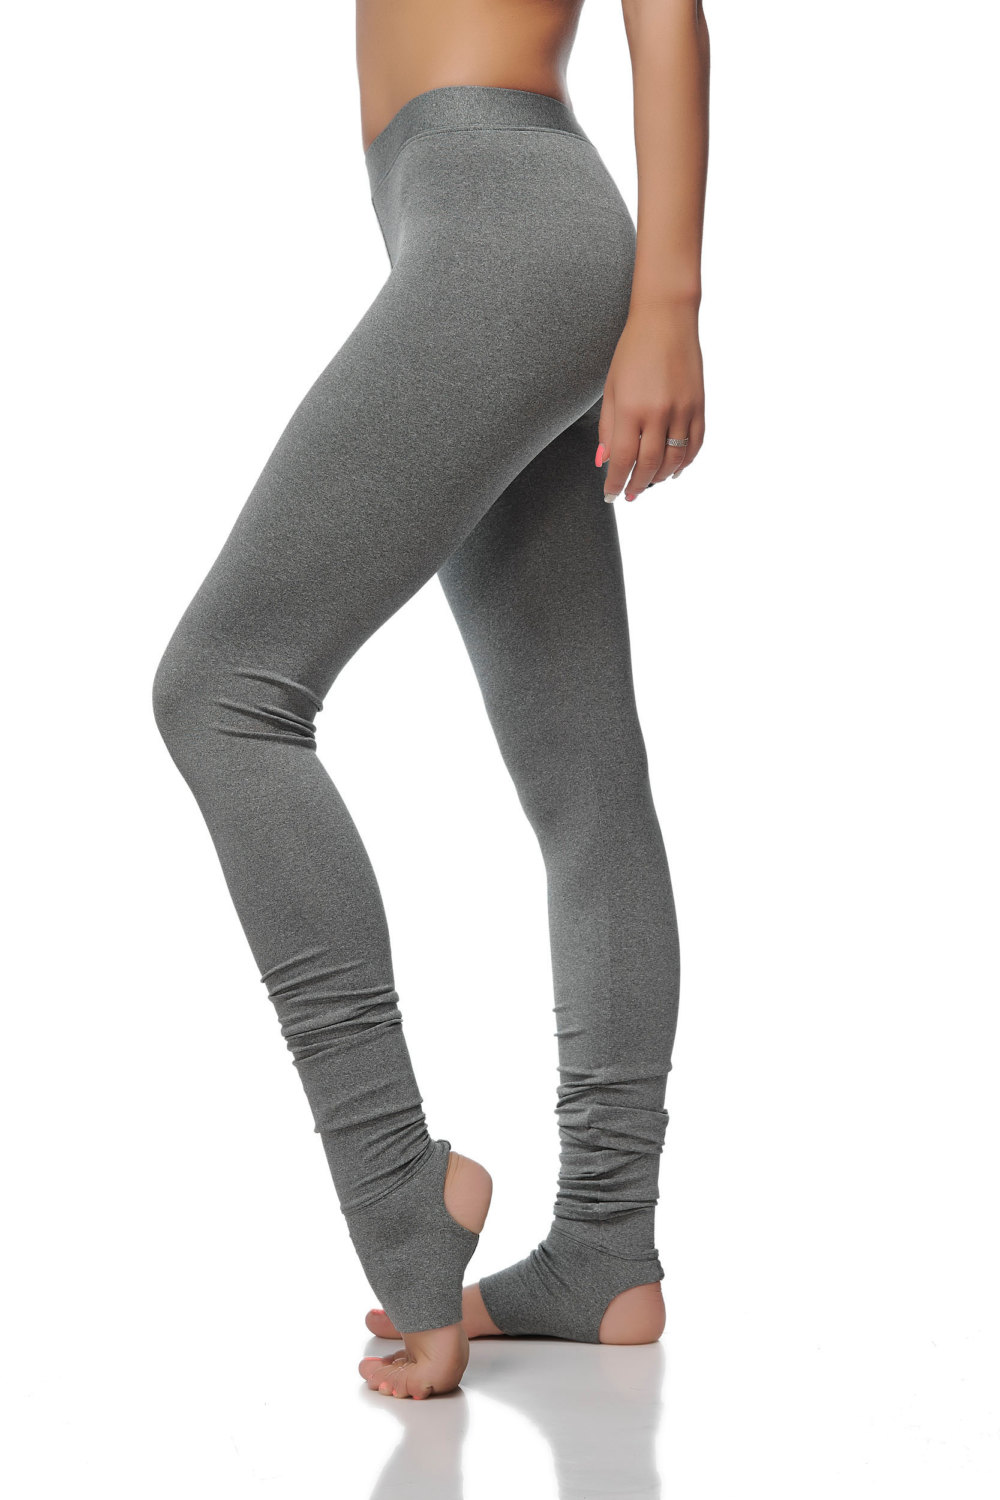 f2883238c Extra Long Gray Leggings - Special Dance and Yoga Leggings with Spats -  Soft Gray Women  ...